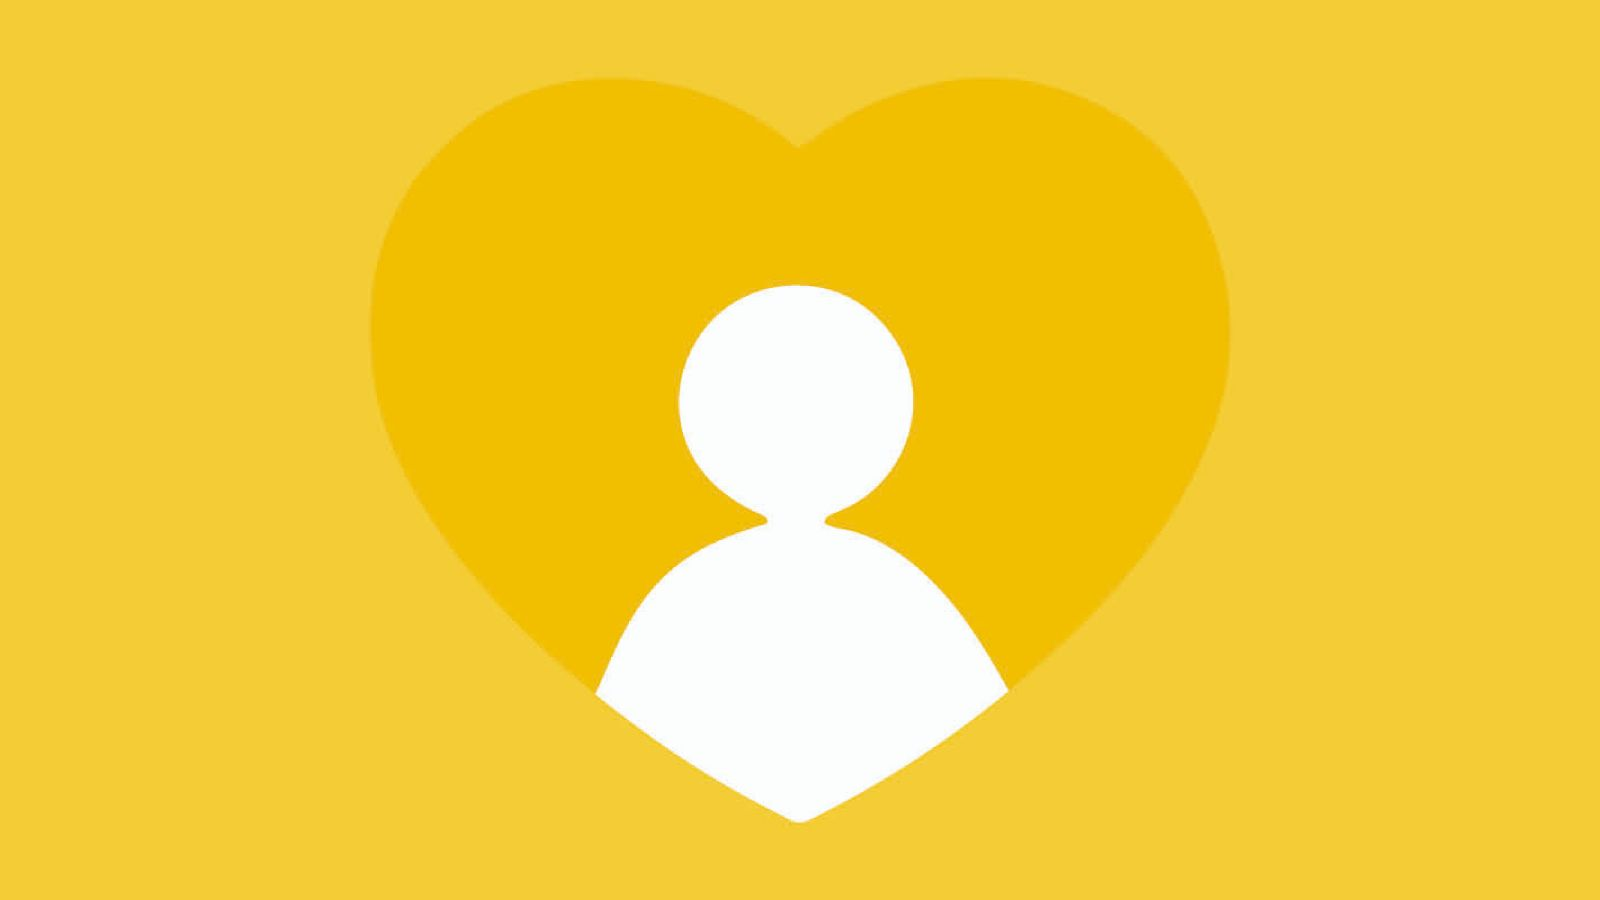 A white outline of a person in a yellow heart against a light yellow background.